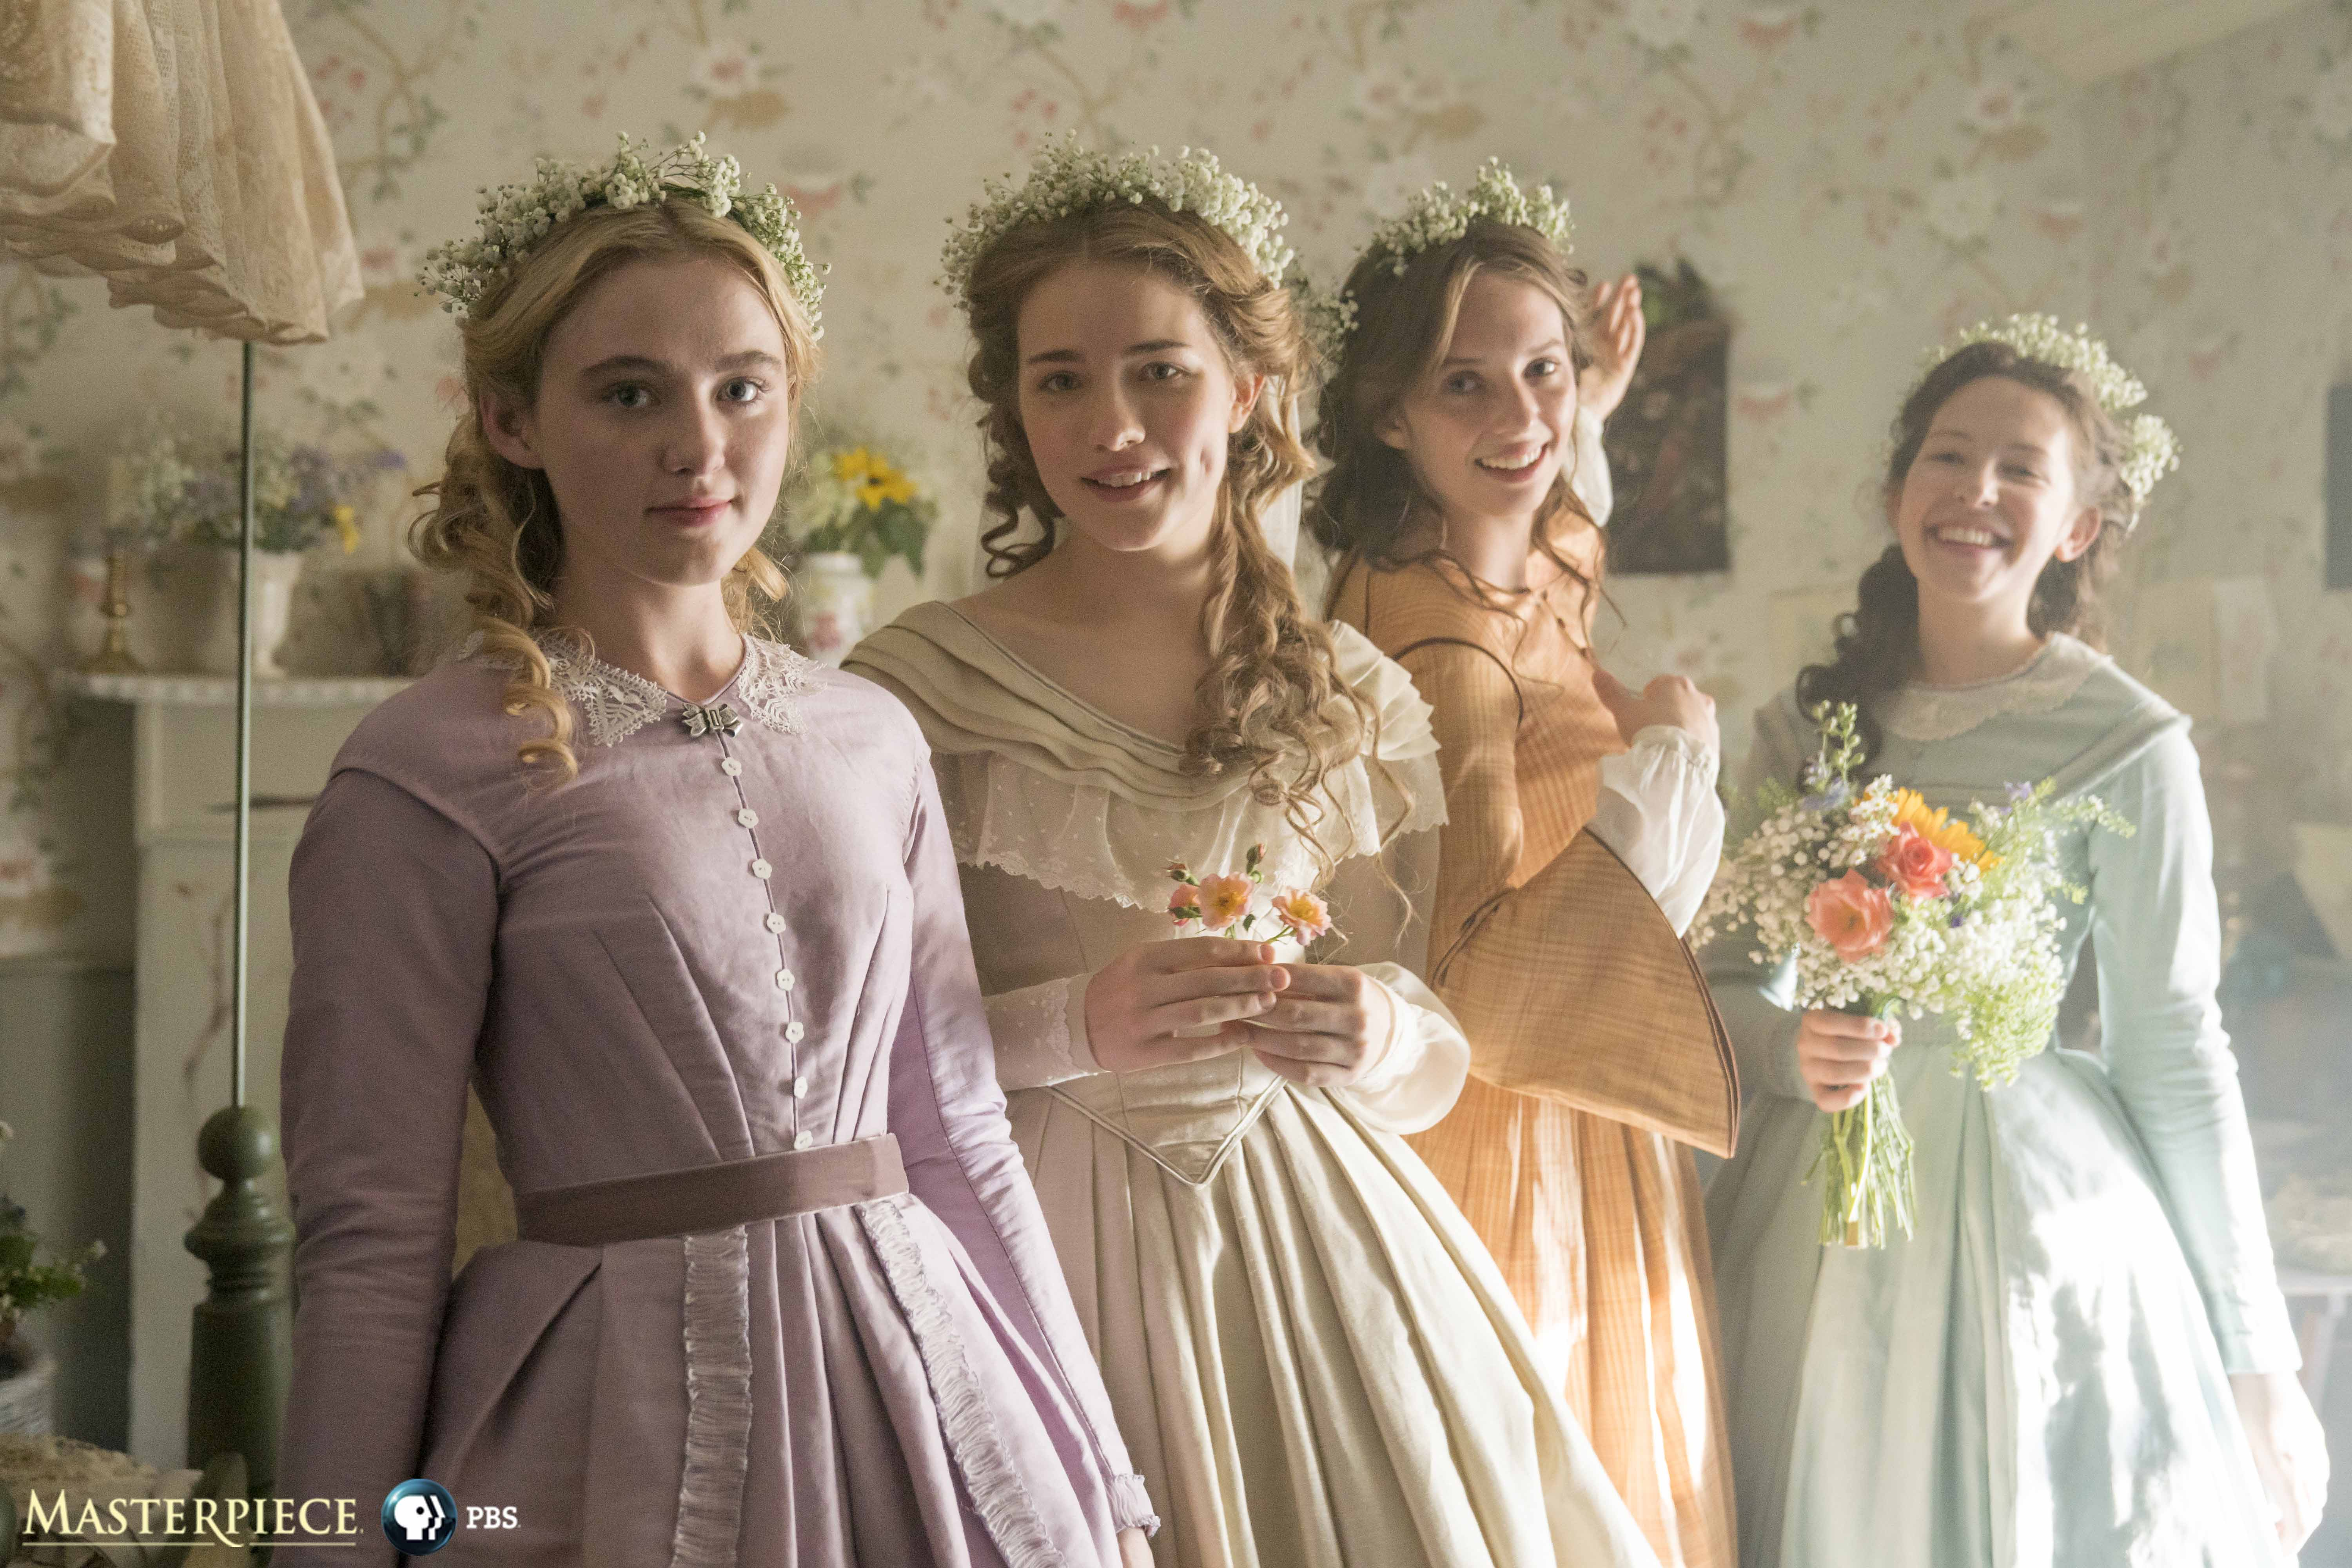 Little Women MASTERPIECE on PBSShown (Left-Right): Kathryn Newton as Amy, Willa Fitzgerald as Meg, Maya Hawke as Jo, and Annes Elwy as Beth.Little Women has been commissioned by Piers Wenger and Charlotte Moore at the BBC, and is produced by Playground (Wolf Hall, Howards End) for BBC One. The series is a co-production with MASTERPIECE on PBS. The producer is Susie Liggat. Executive producers are Colin Callender and Sophie Gardiner for Playground, Heidi Thomas, Lucy Richer for the BBC and Rebecca Eaton for Masterpiece. Lionsgate will manage worldwide distribution excluding US and UK.Photo courtesy of MASTERPIECE on PBS, BBC and Playground.